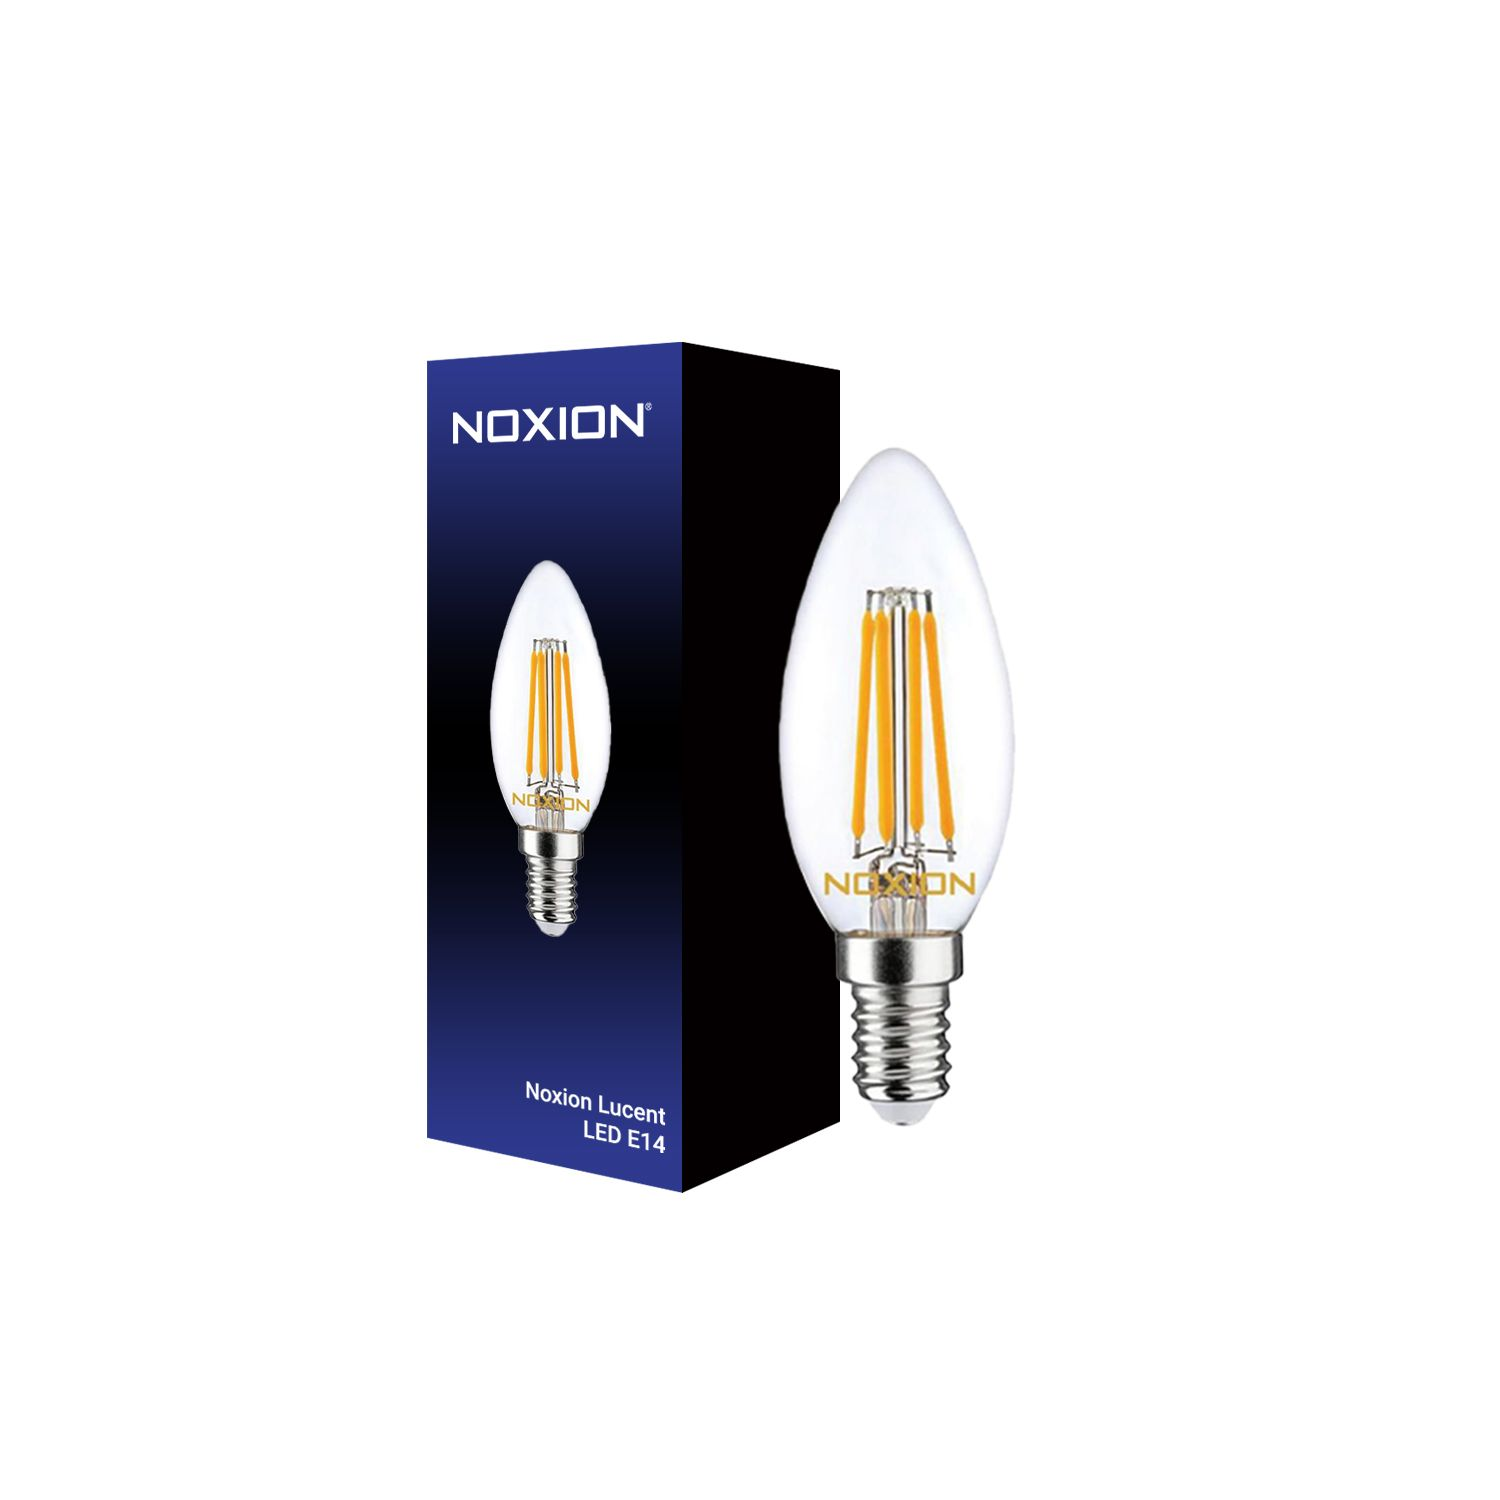 Noxion Lucent Filament LED Candle 4.5W 827 B35 E14 Clear | Dimmable - Replacer for 40W